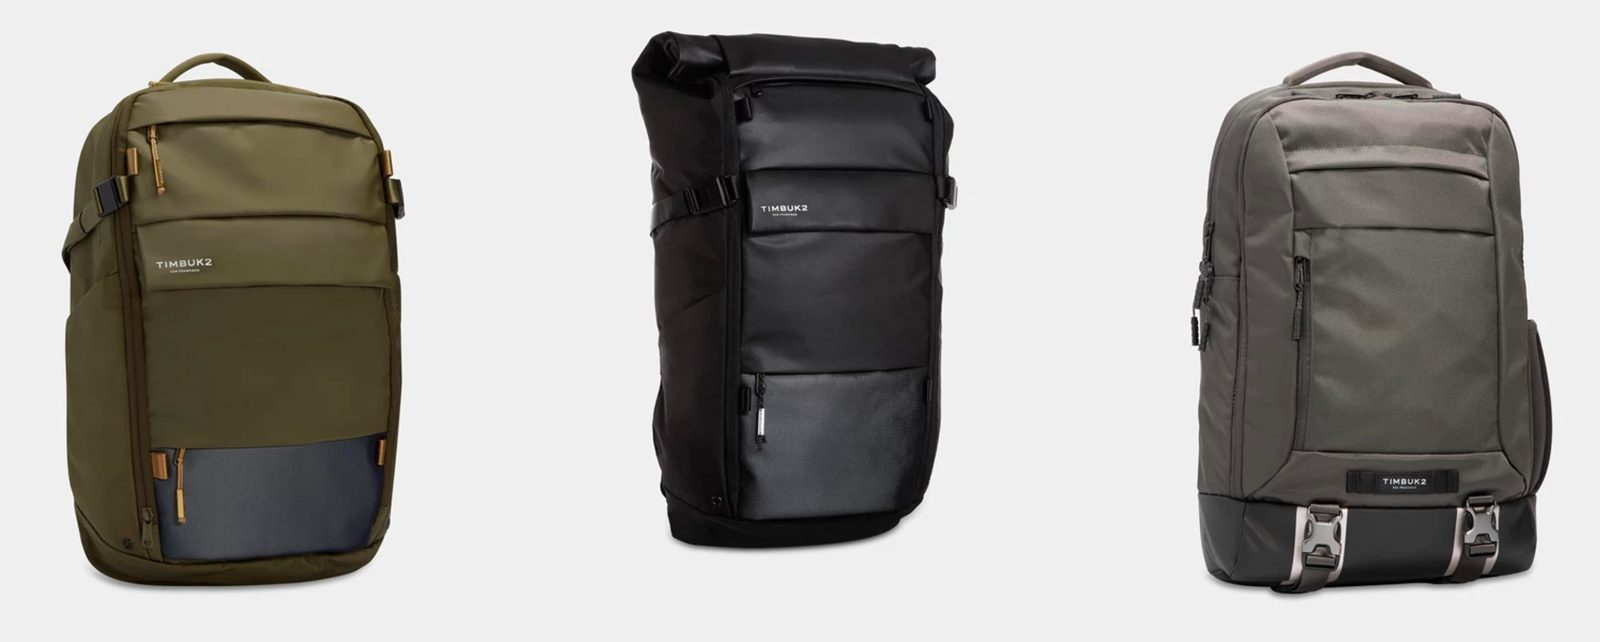 Timbuk2 offers 50% off commuter backpacks, briefcases, and more + free shipping